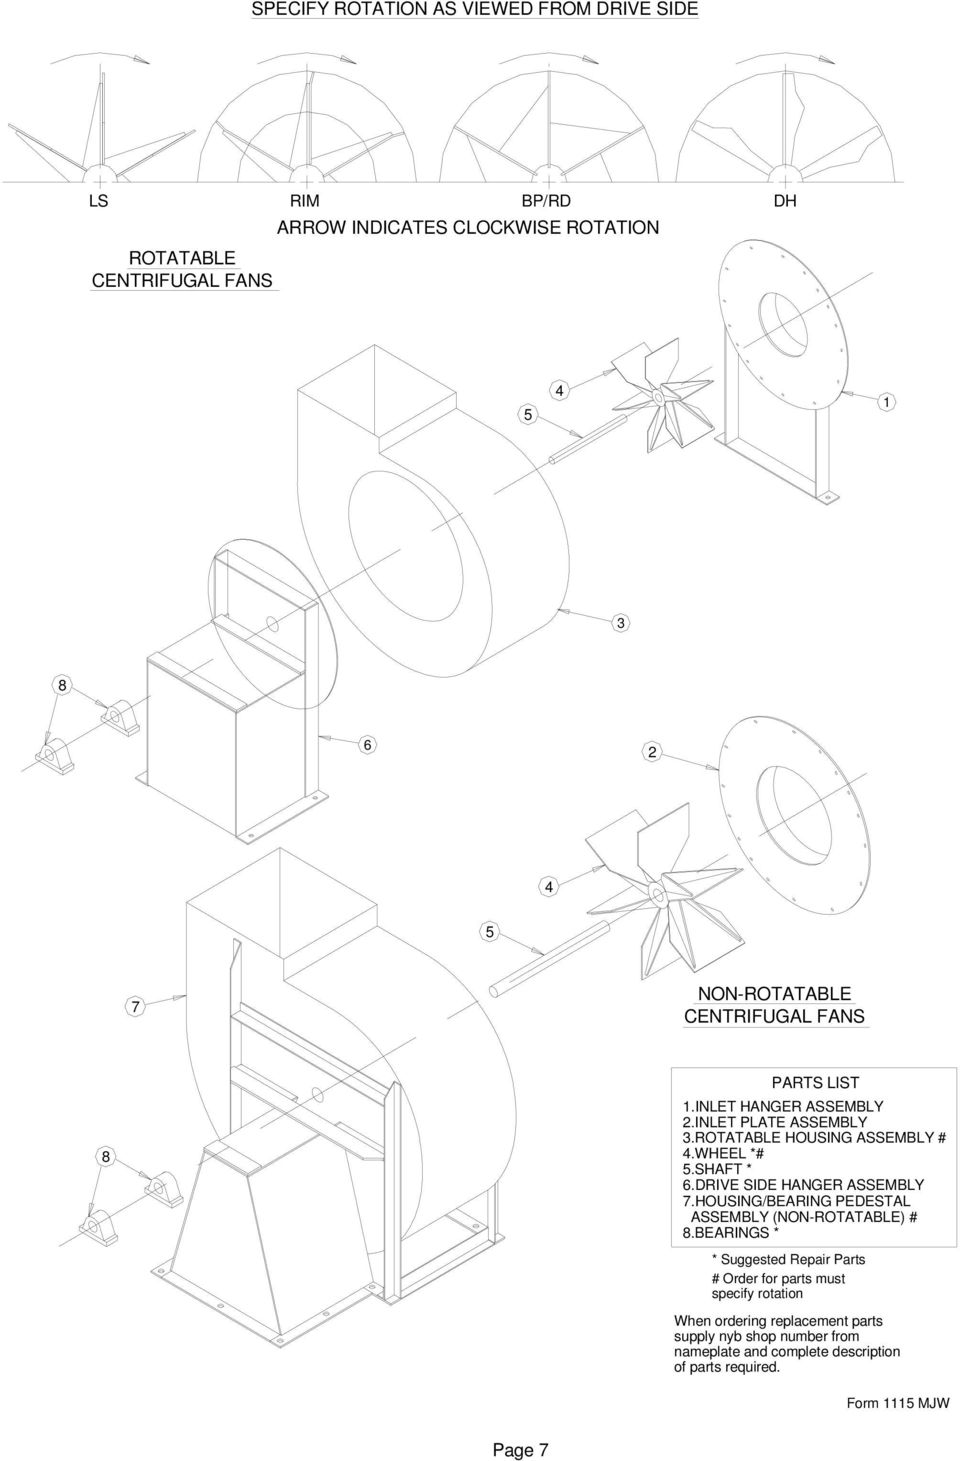 Im 110 Installation Maintenance Operating Instructions Centrifugal Fan Wiring Diagram Drive Side Hanger Assembly 7housing Bearing Pedestal Non Rotatable